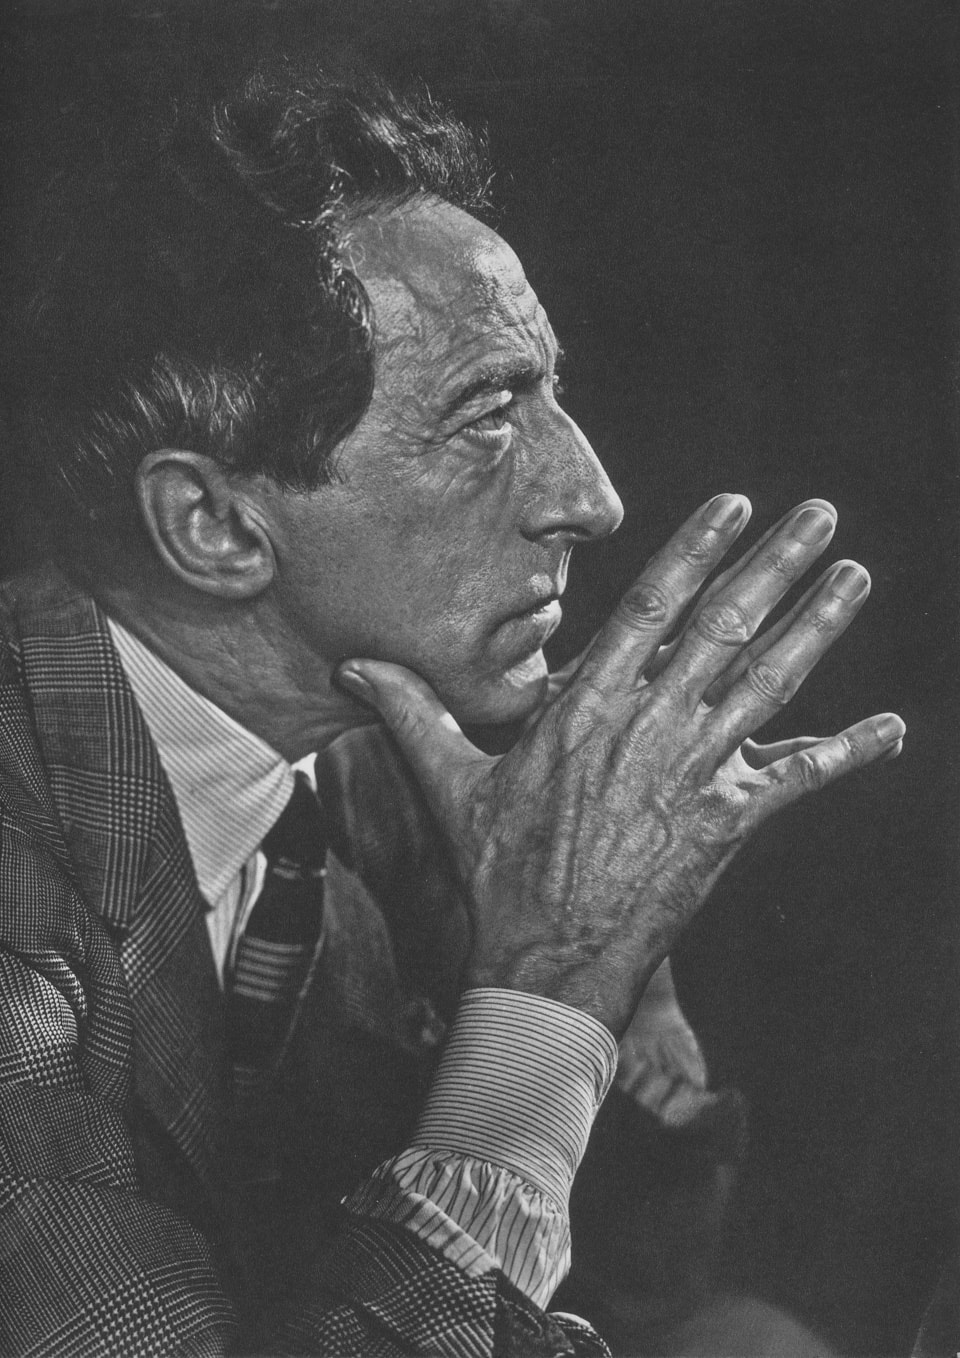 Jean Cocteau by Yousuf Karsh, 1949